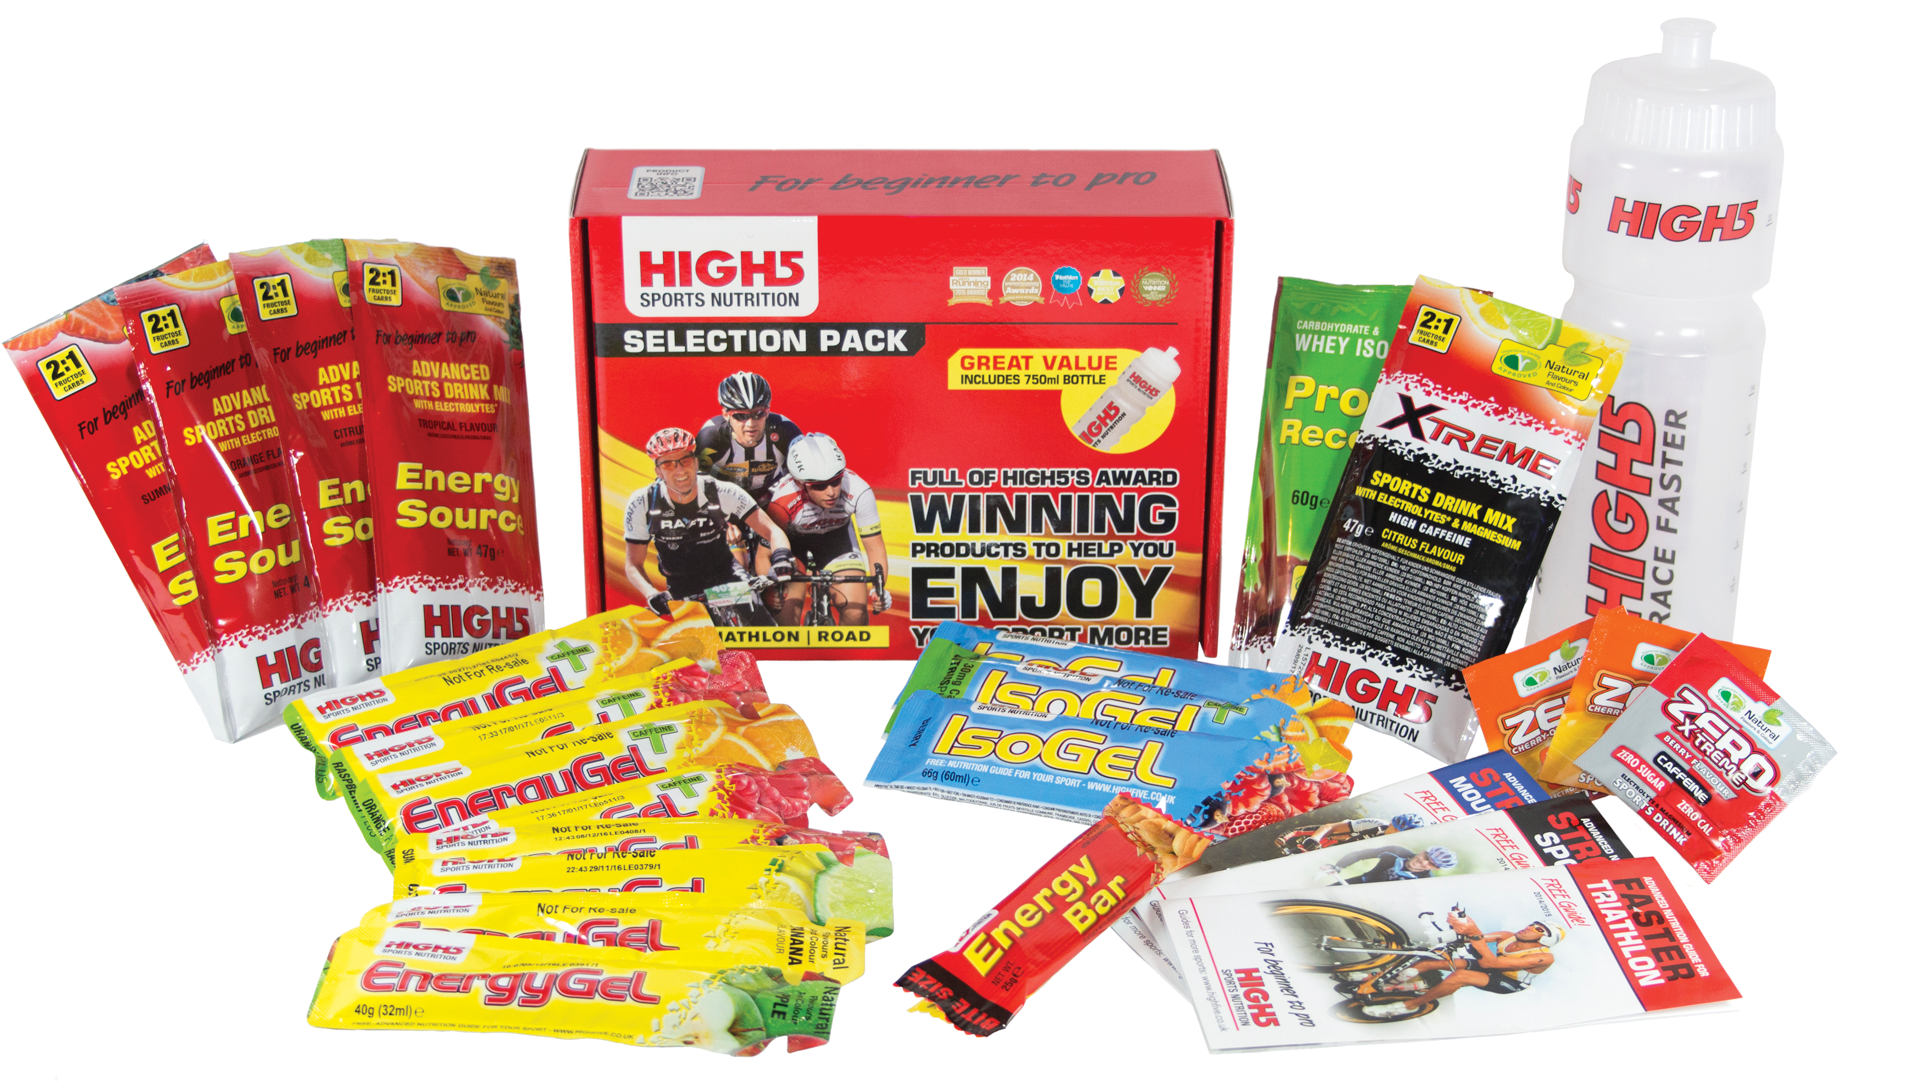 HIGH5 become Official Nutrition Partner to the Women's Tour and Tour Series